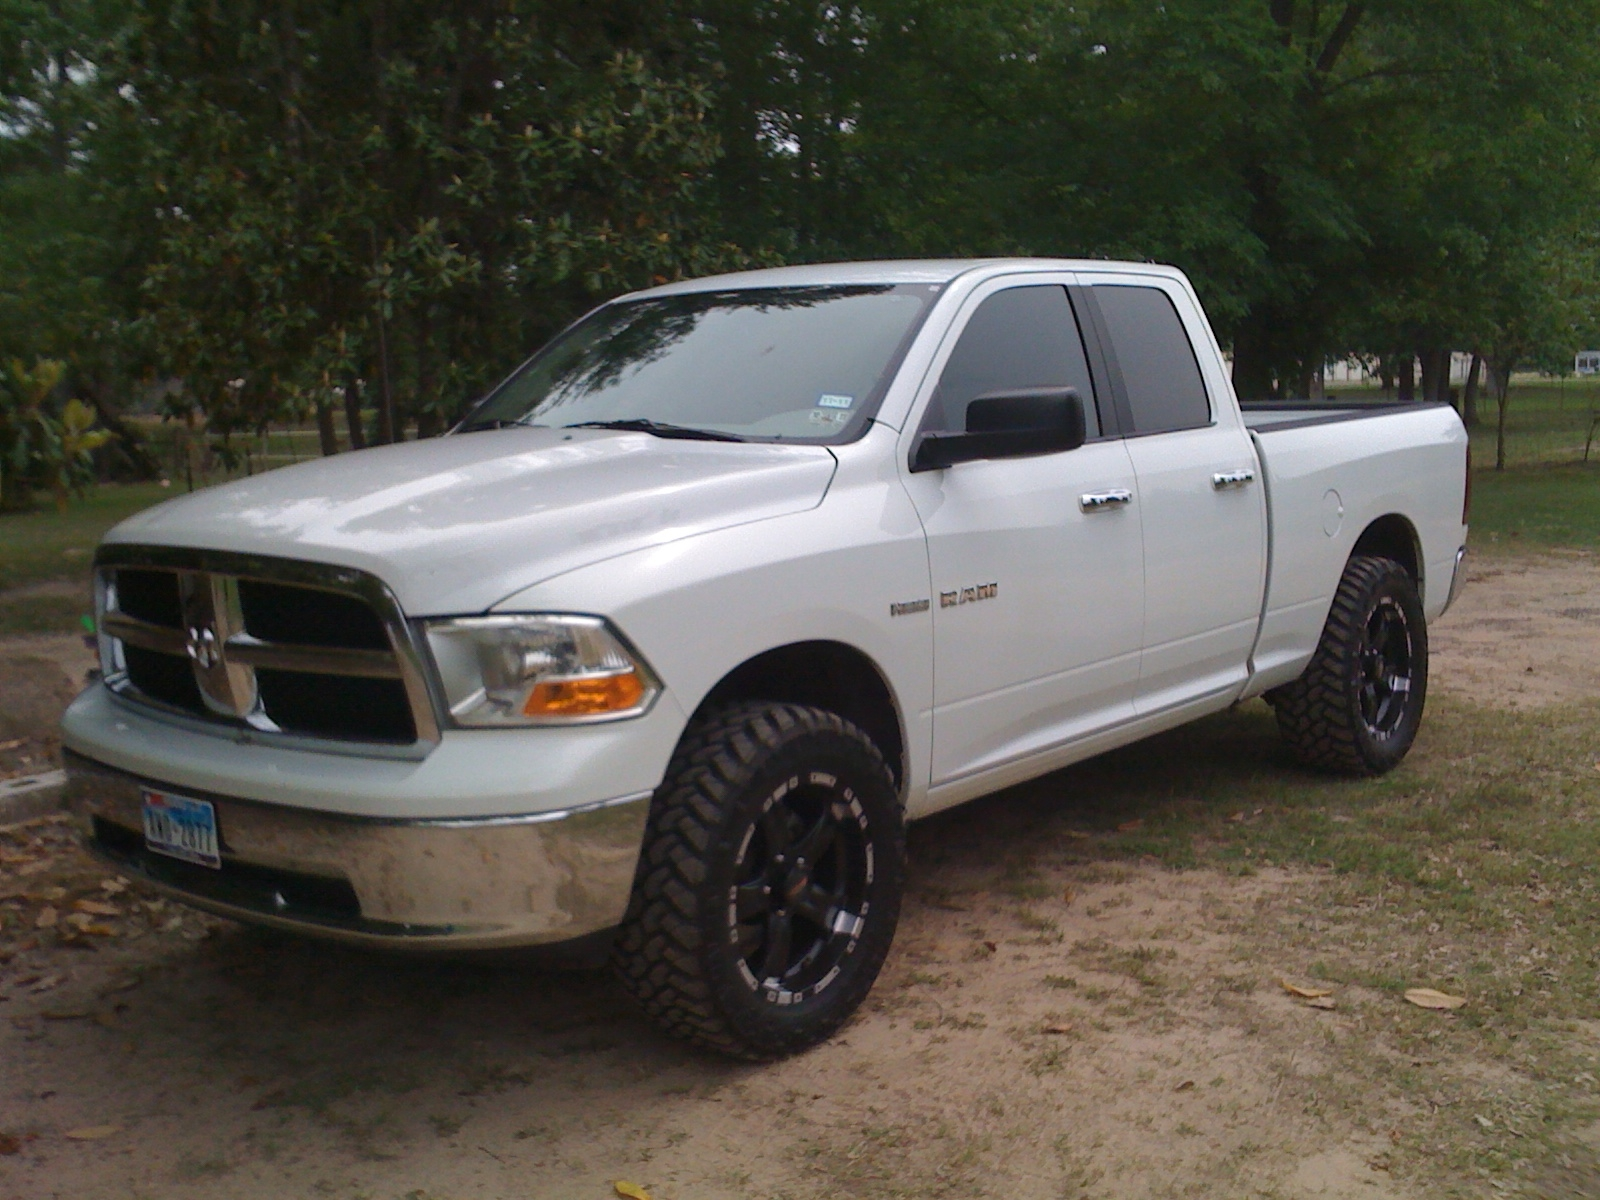 carlost19 2010 dodge ram 1500 crew cabslt pickup 4d 5 1 2 ft specs photos modification info at. Black Bedroom Furniture Sets. Home Design Ideas